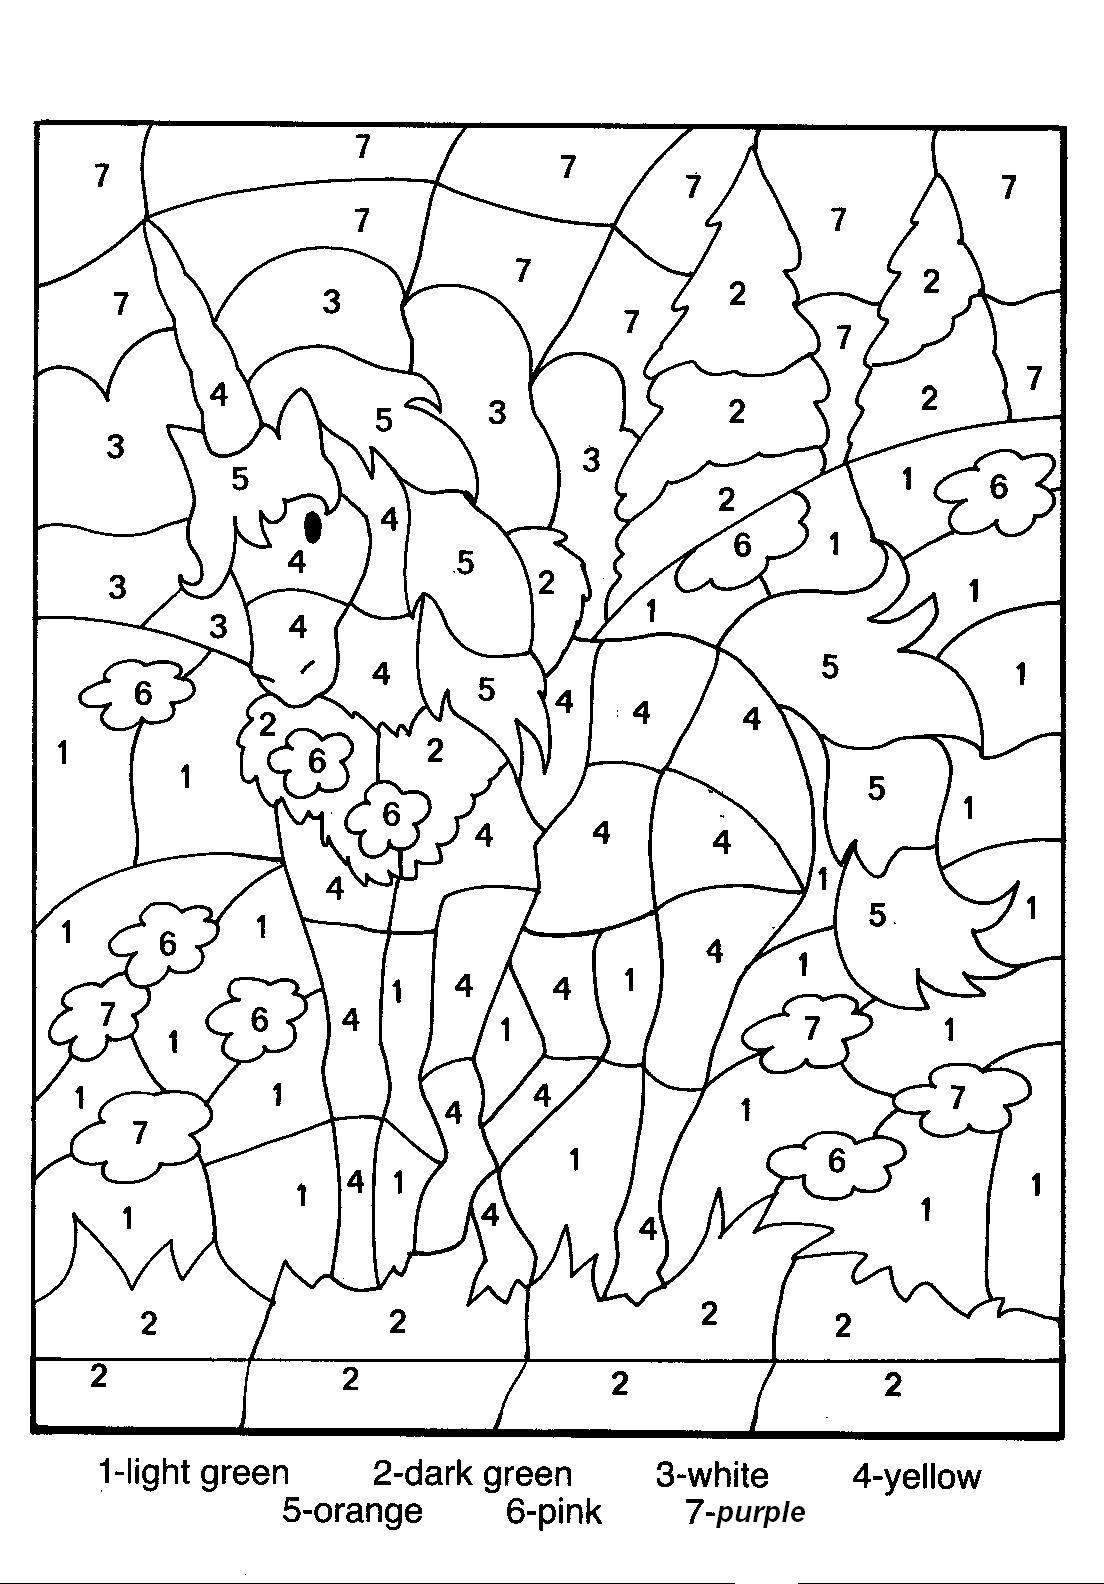 Free Printable Colornumber Coloring Pages - Best Coloring Pages - Free Printable Color By Number For Adults